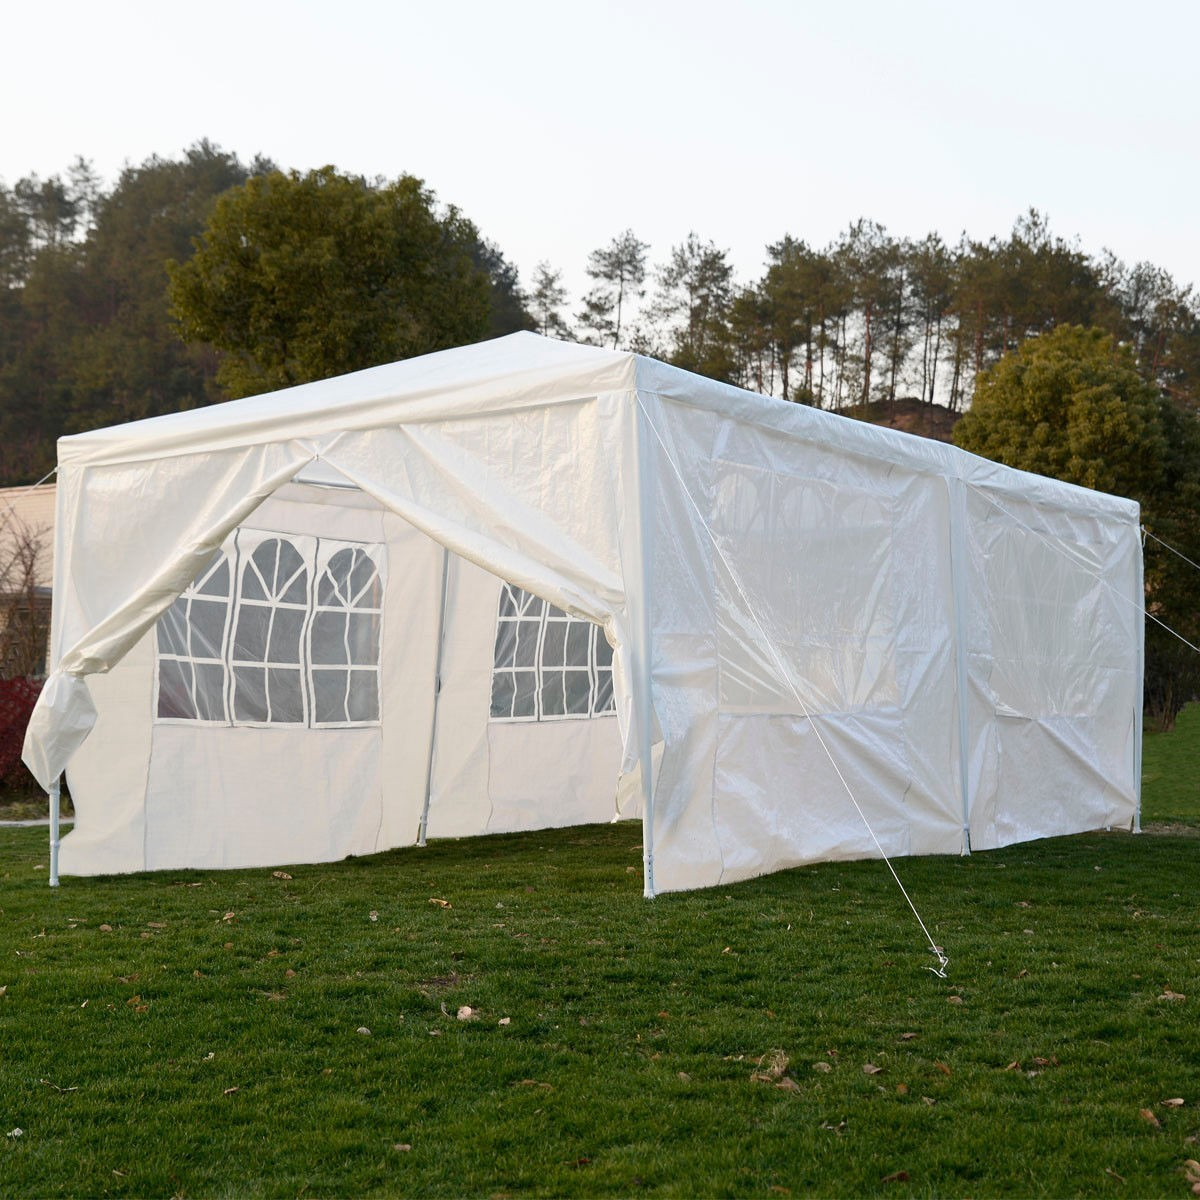 Outdoor 10'x20' Canopy Party Wedding Tent Heavy duty Gazebo Cater Events